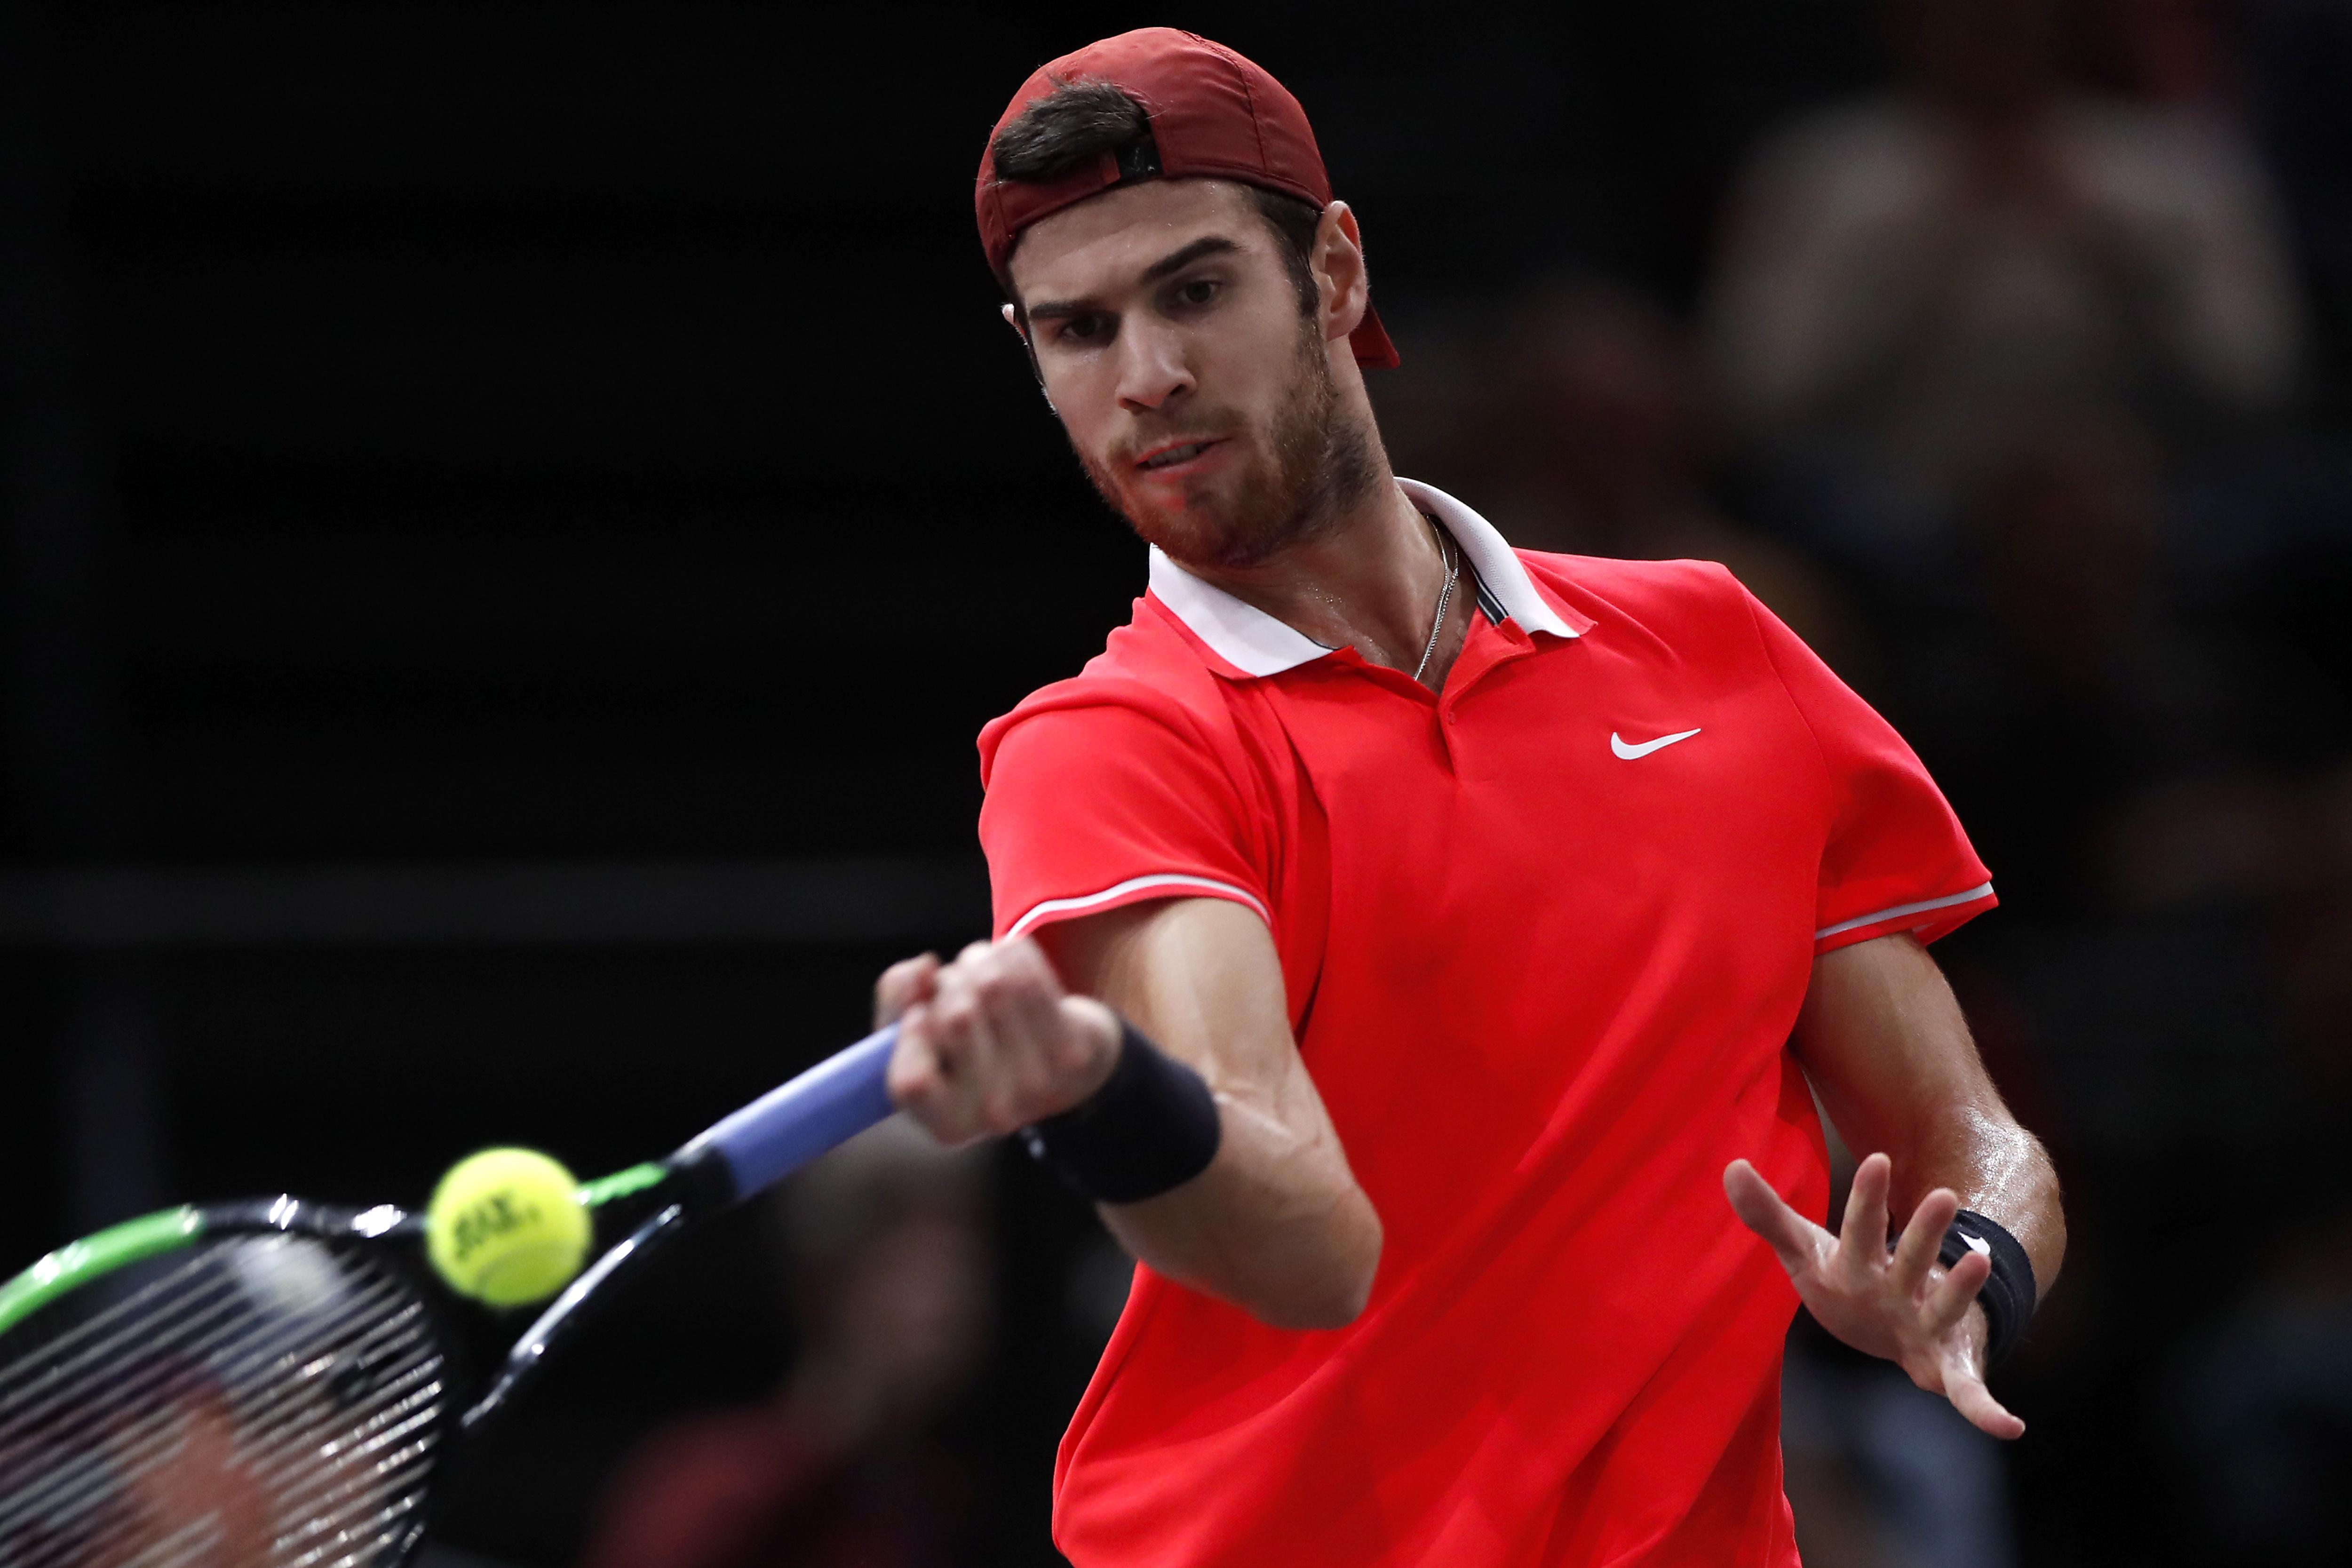 Khachanov is the first Russian to win a Masters title since the controversial Nikolay Davydenko